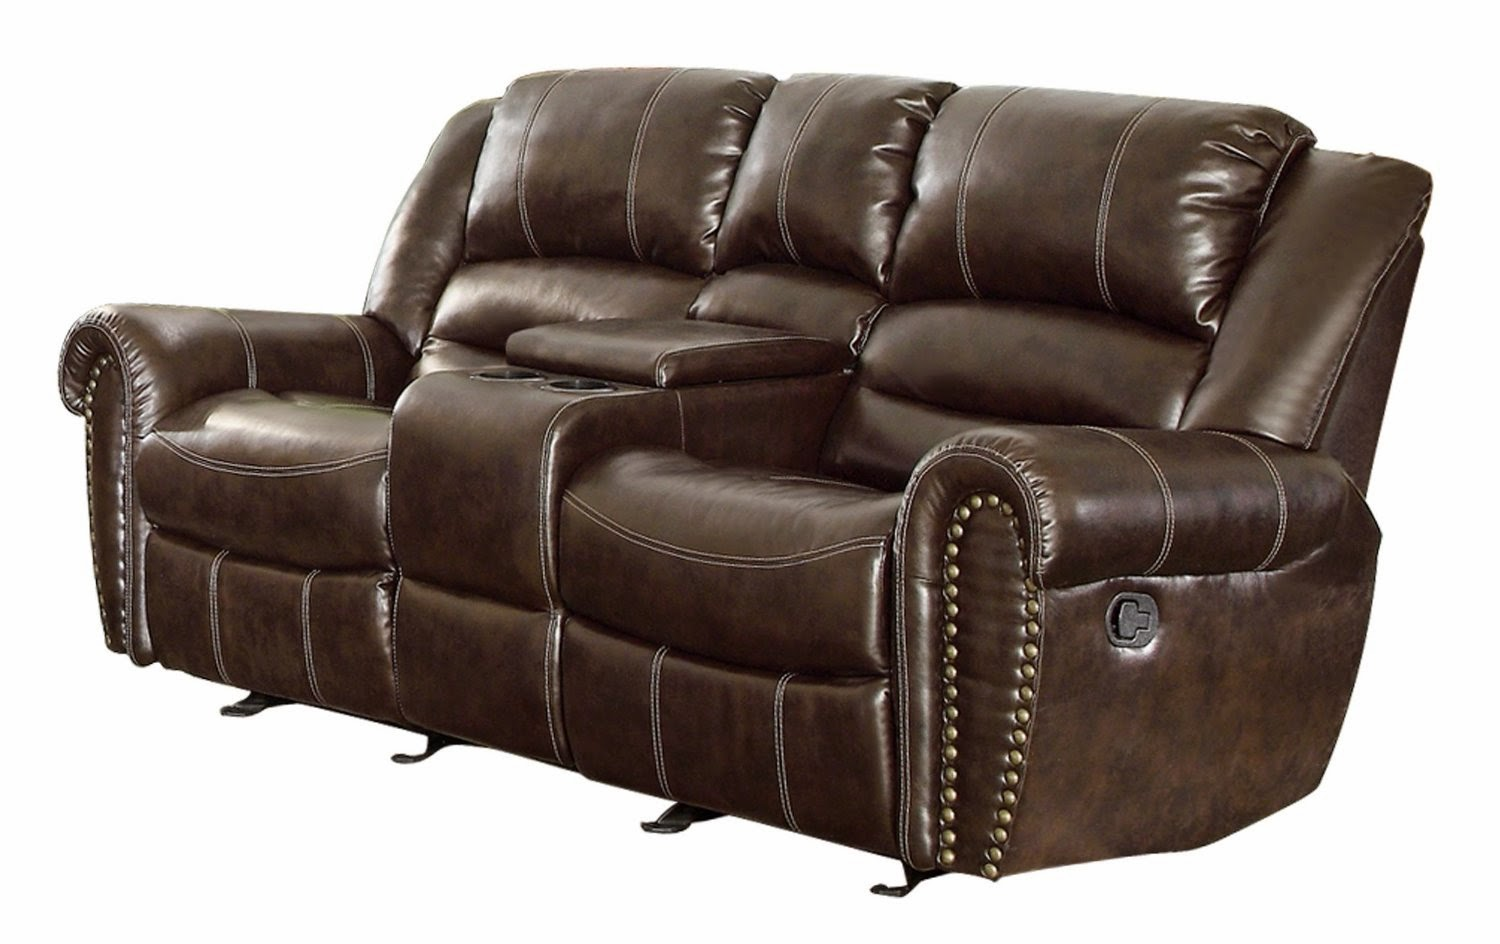 Awe Inspiring Leather Recliner Sofa Cheap Sofa And Loveseat Sets On Sale Creativecarmelina Interior Chair Design Creativecarmelinacom